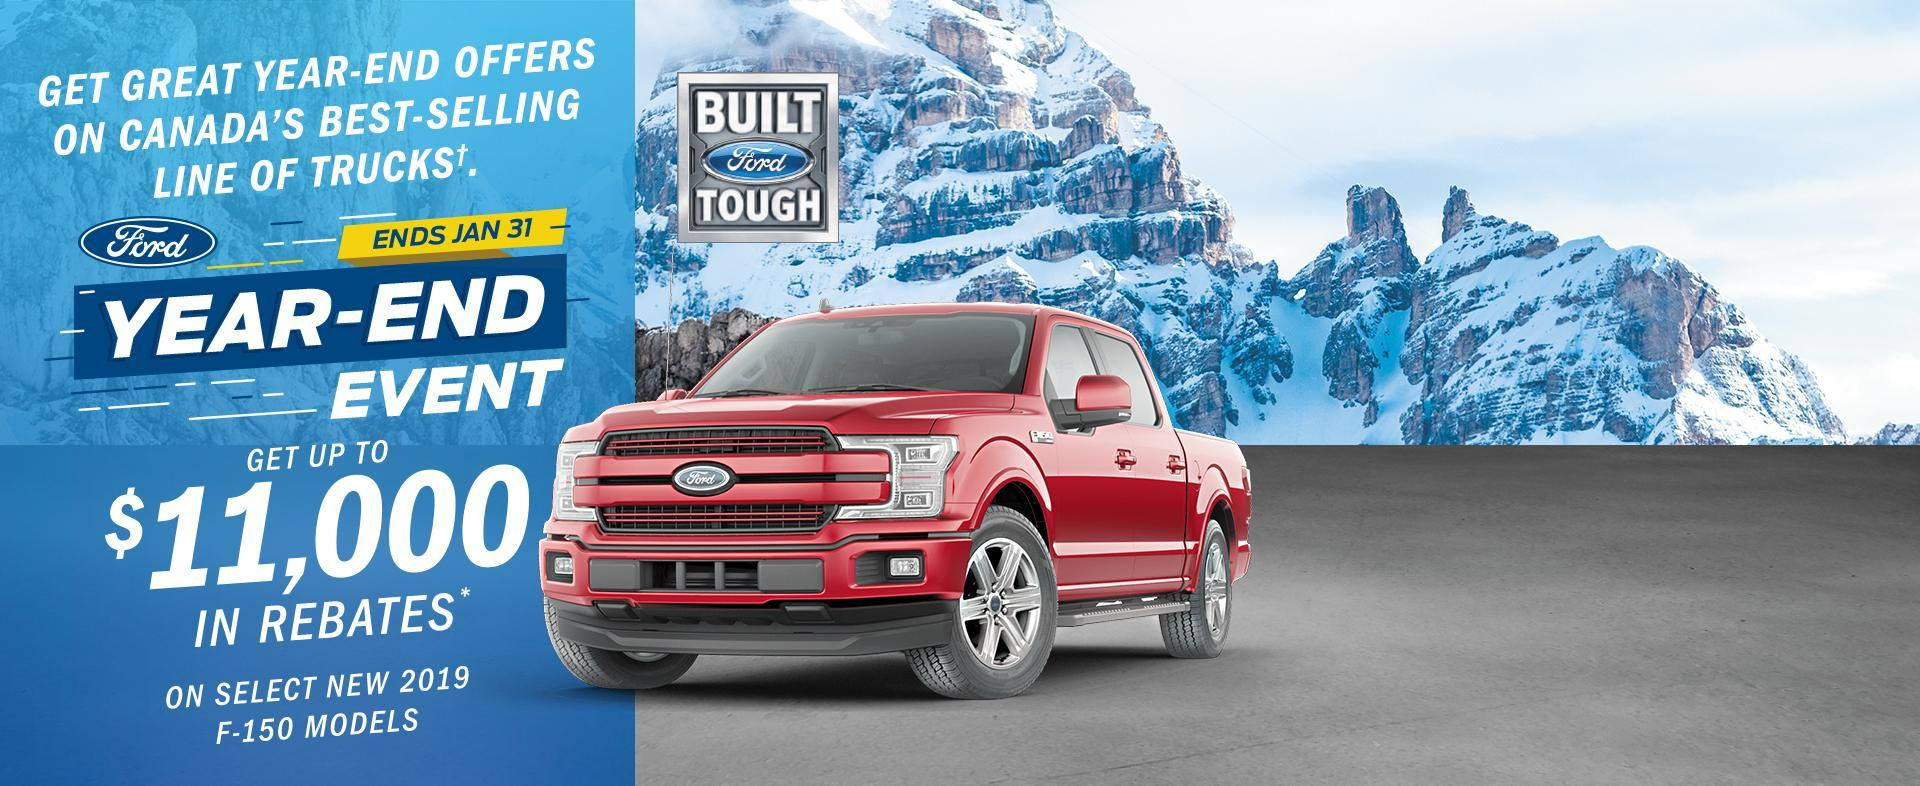 2019 Ford F150 Year End Event